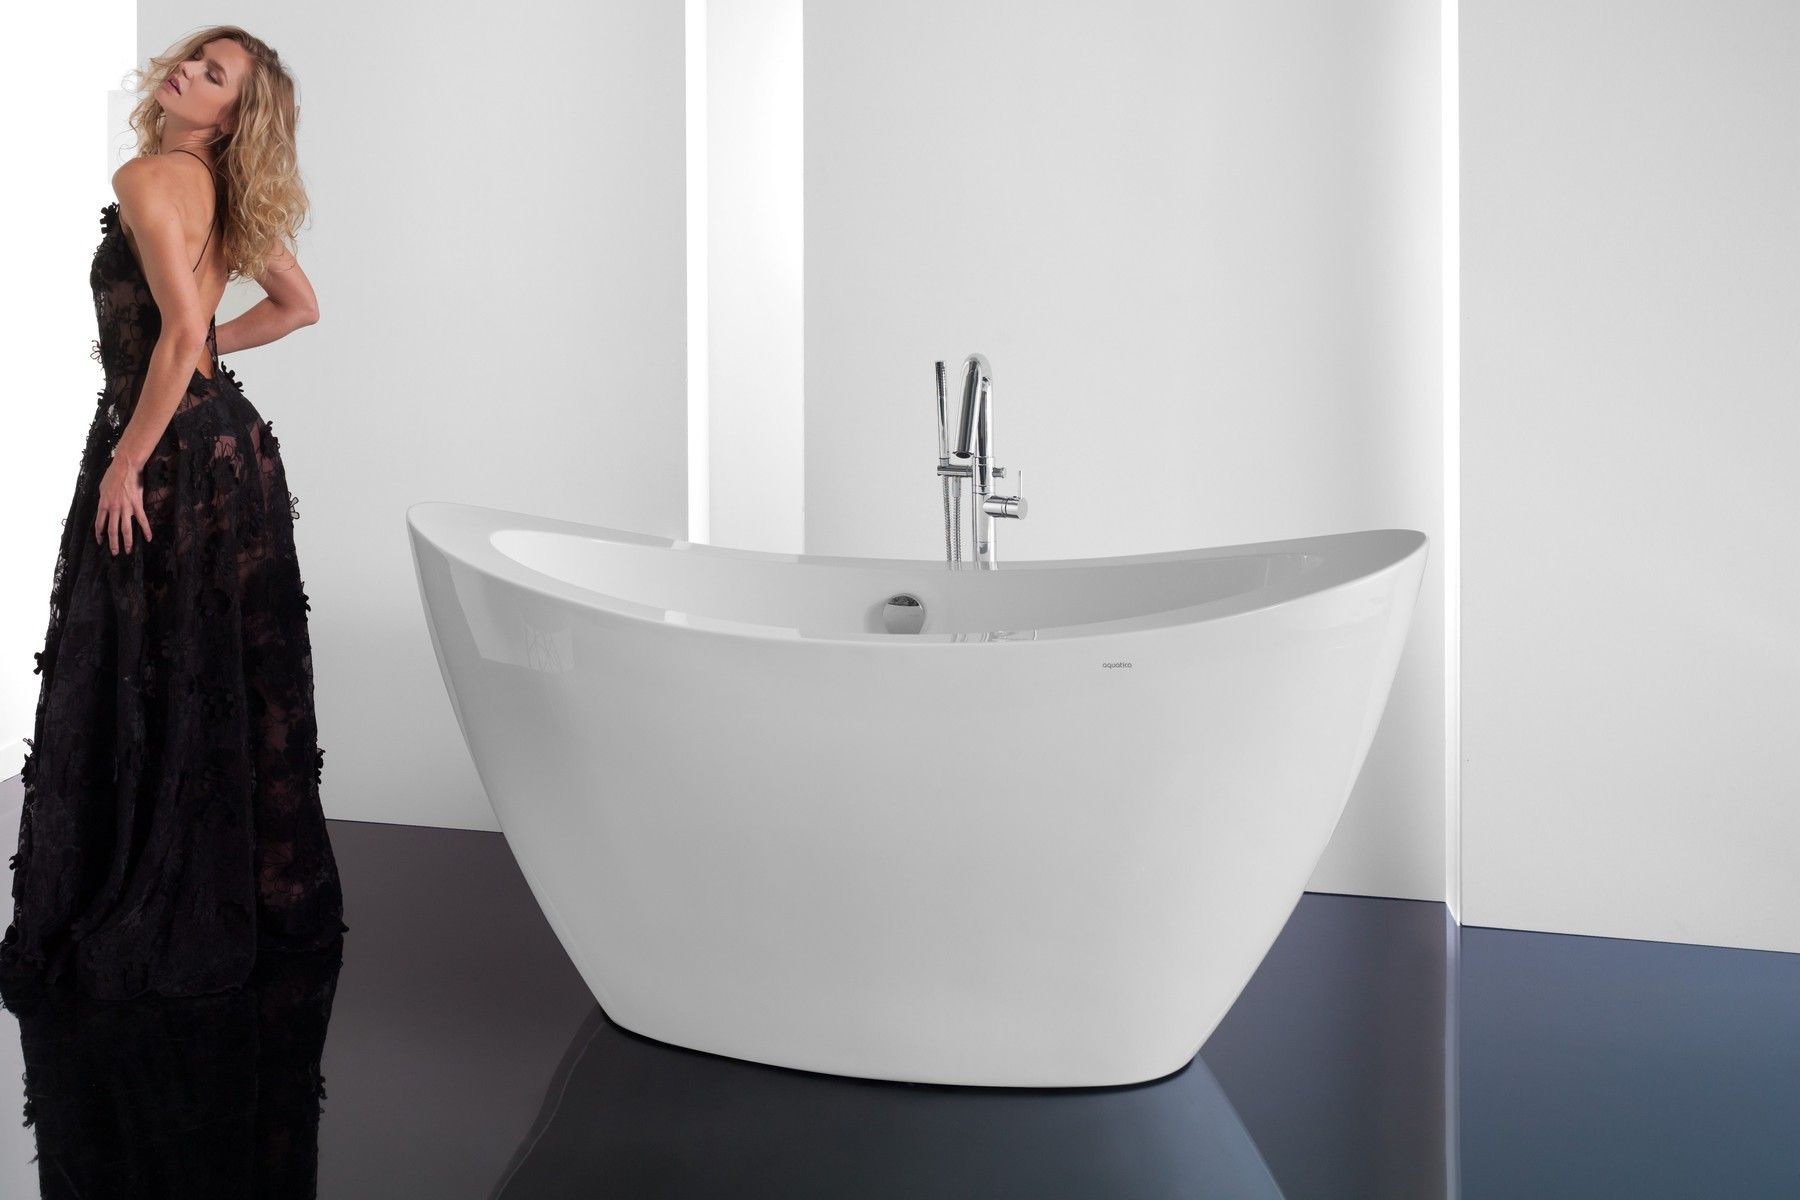 PureScape 148 has been crafted with an elegantly refined and ...